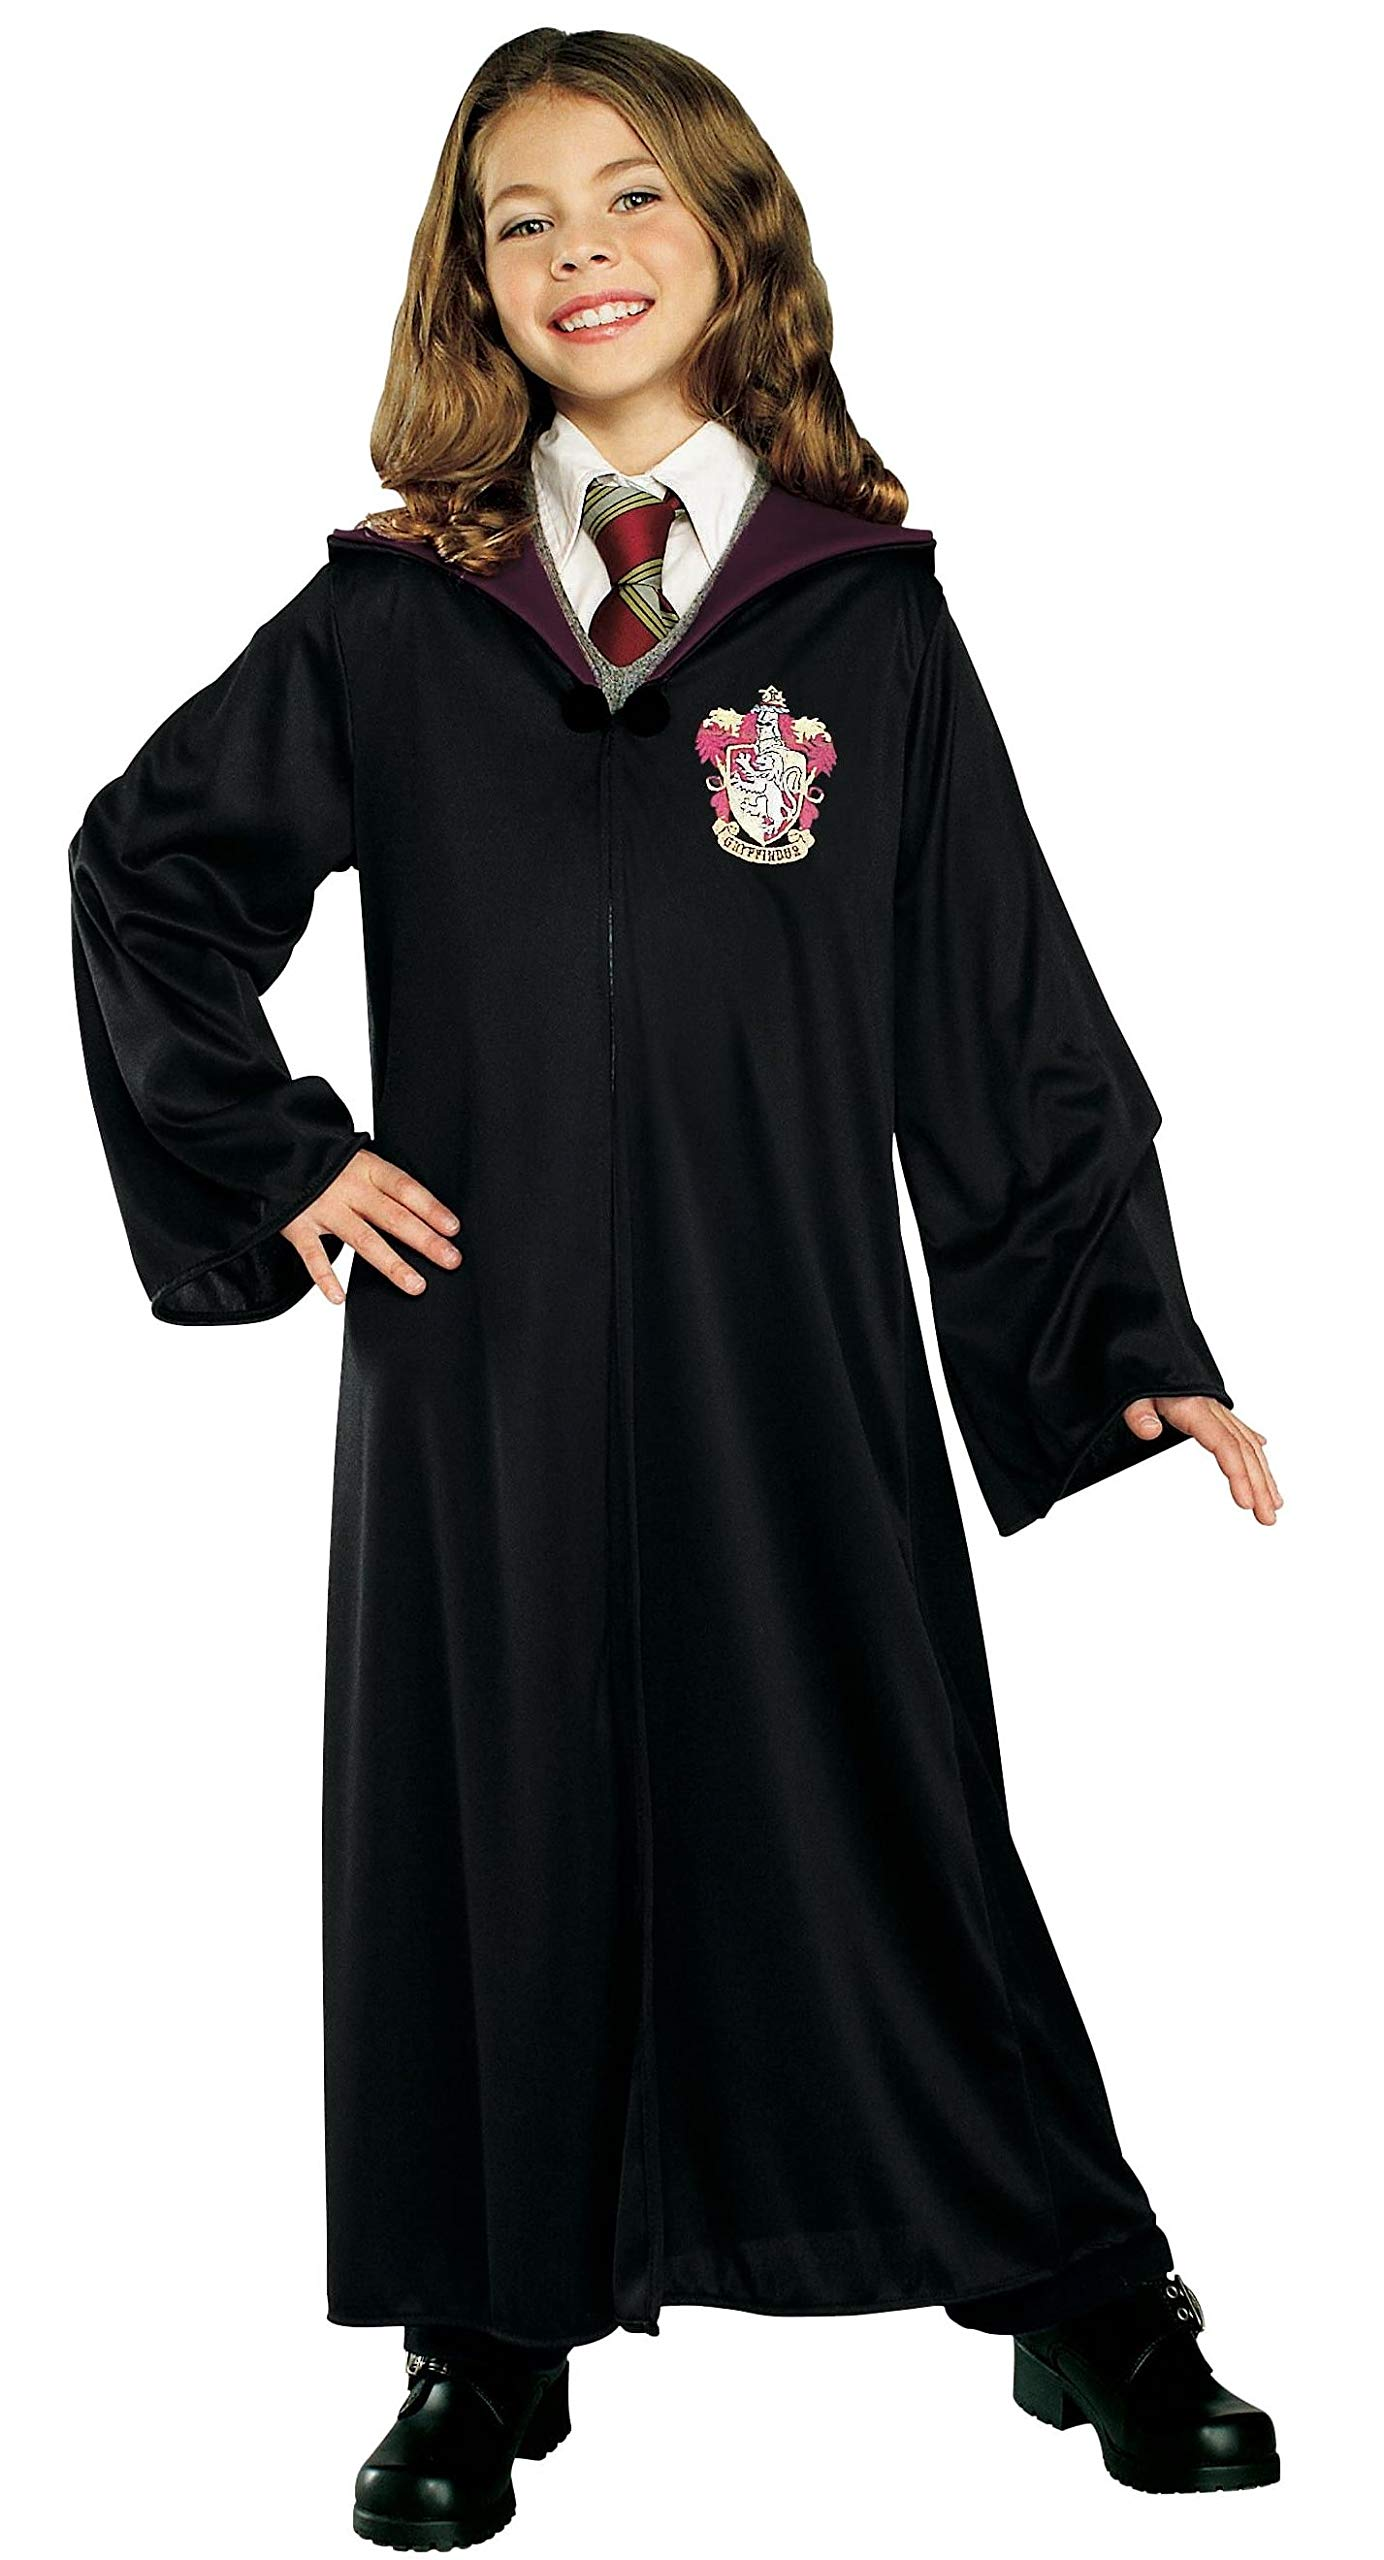 Rubie's Harry Potter Child's Hermione Granger Costume Robe, Large